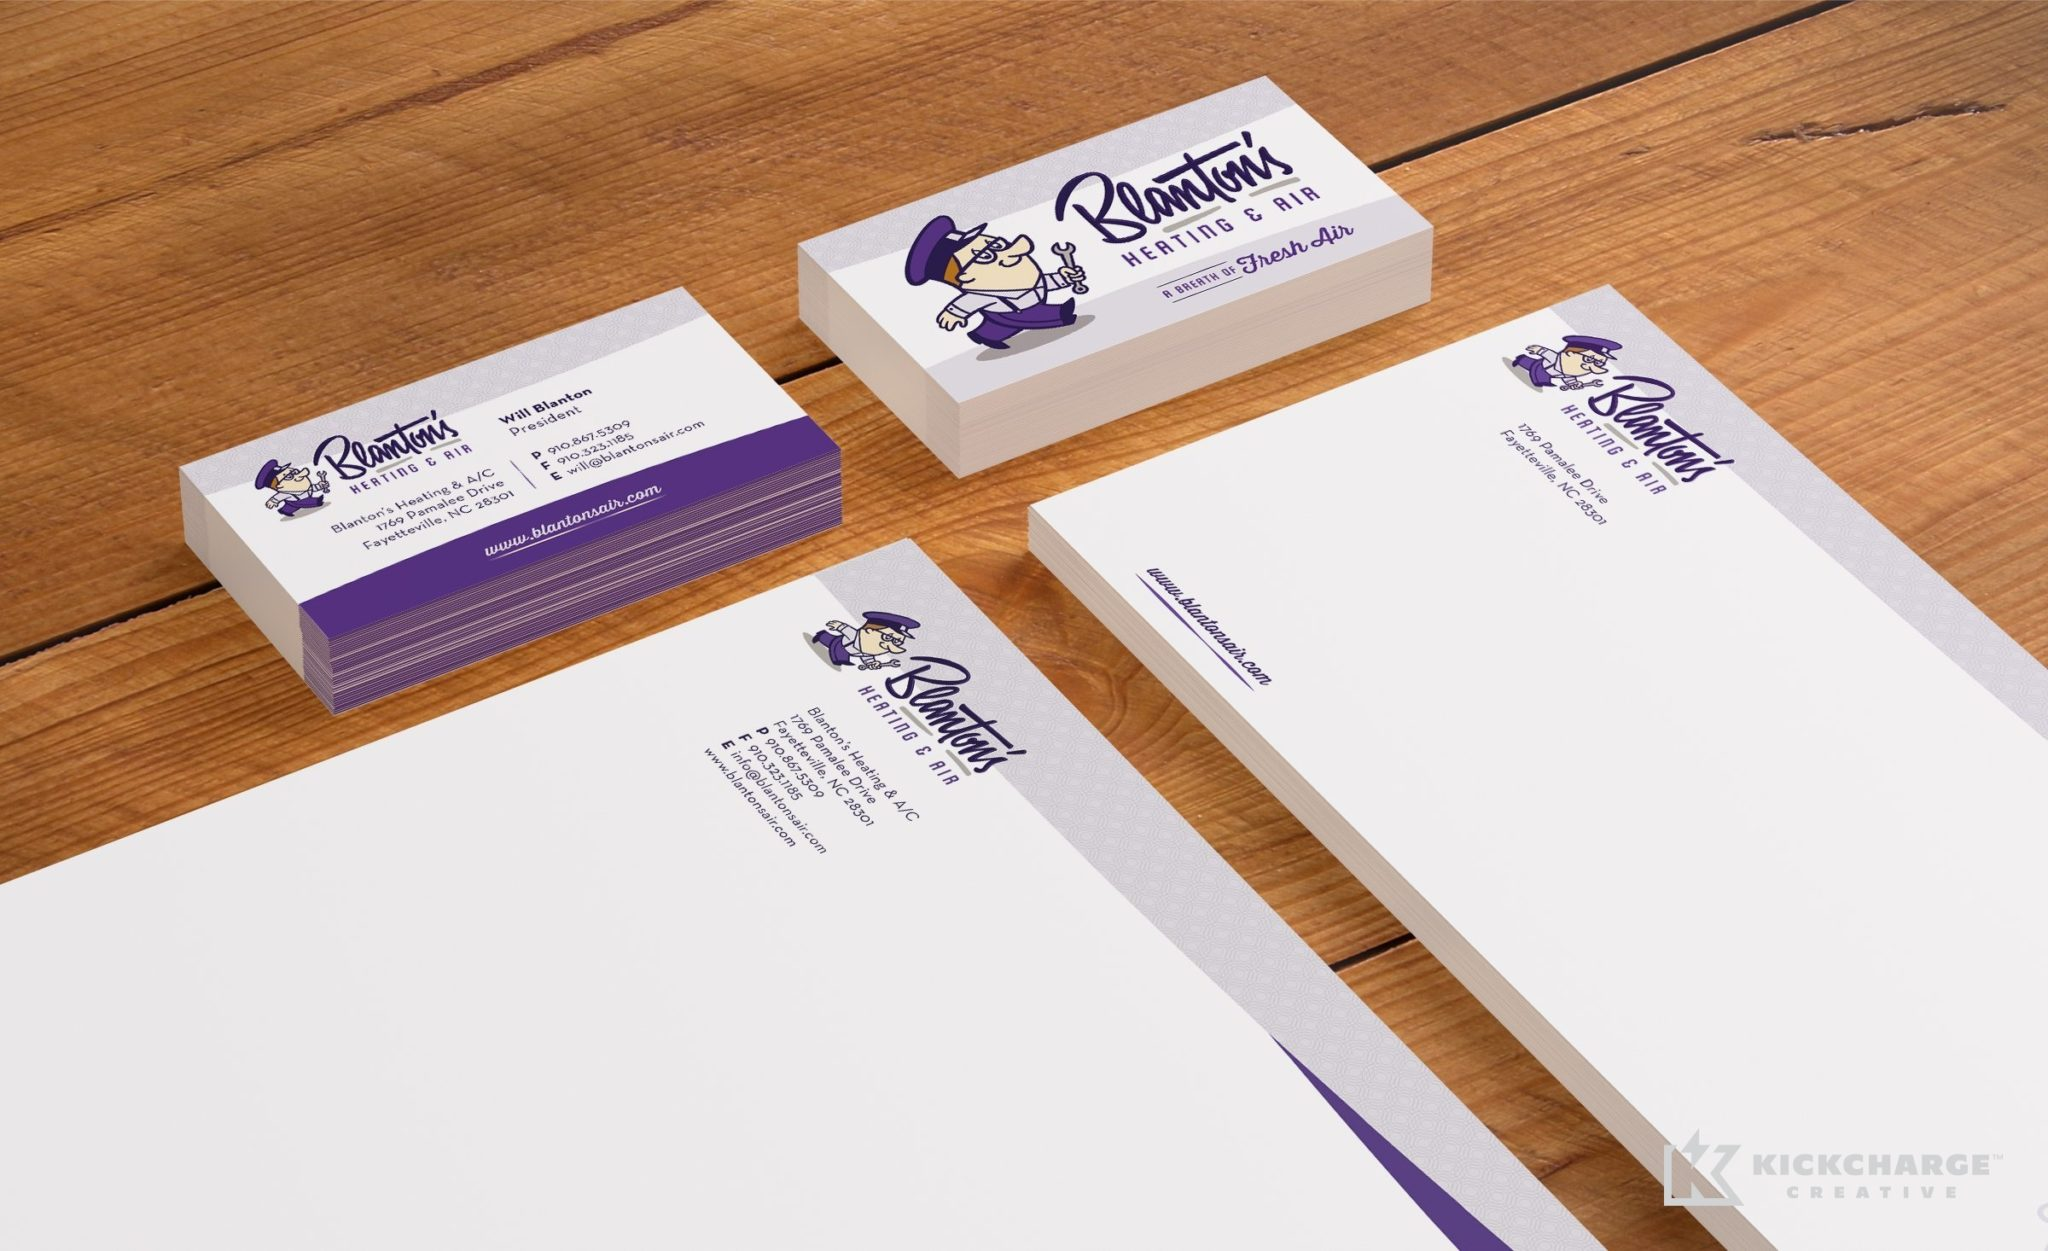 Stationery design and printing for Blanton's Air, Plumbing & Electric.